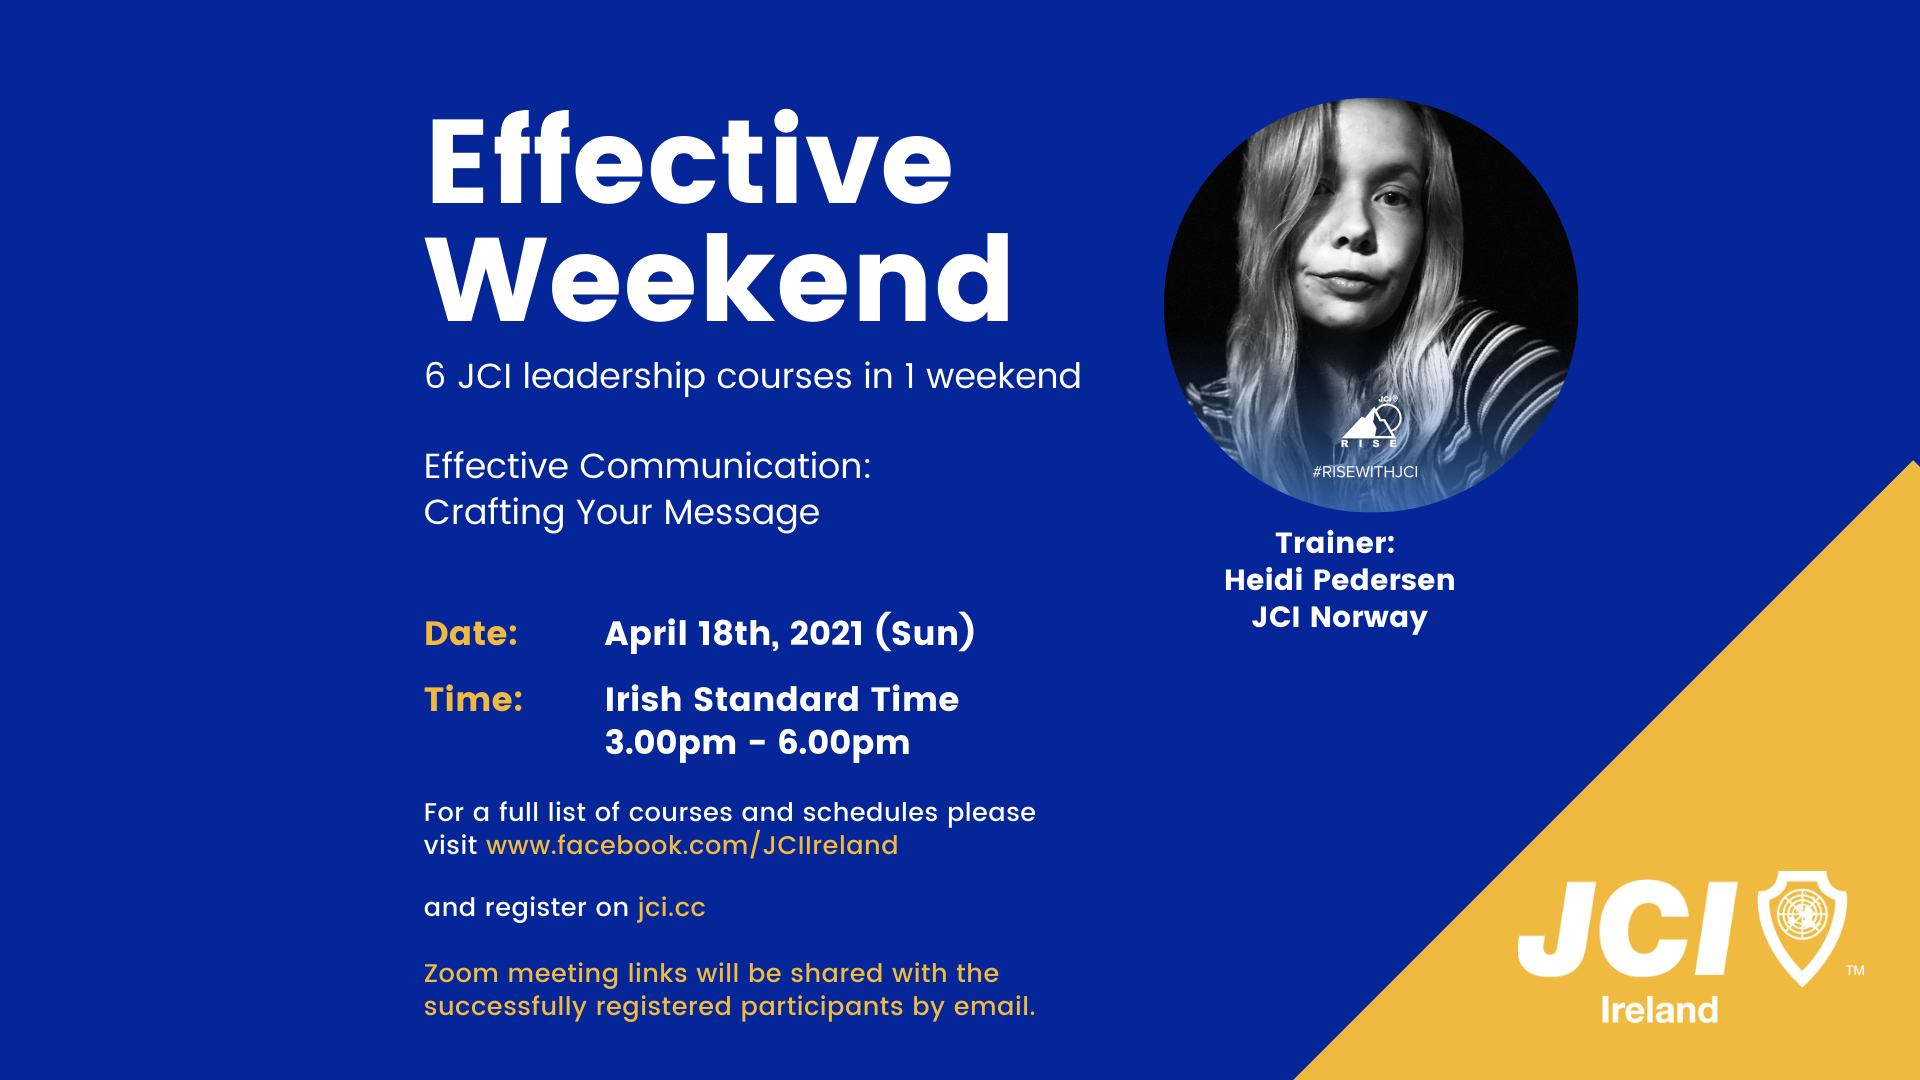 Effective Weekend 2021 - Effective Communication:Crafting Your Message